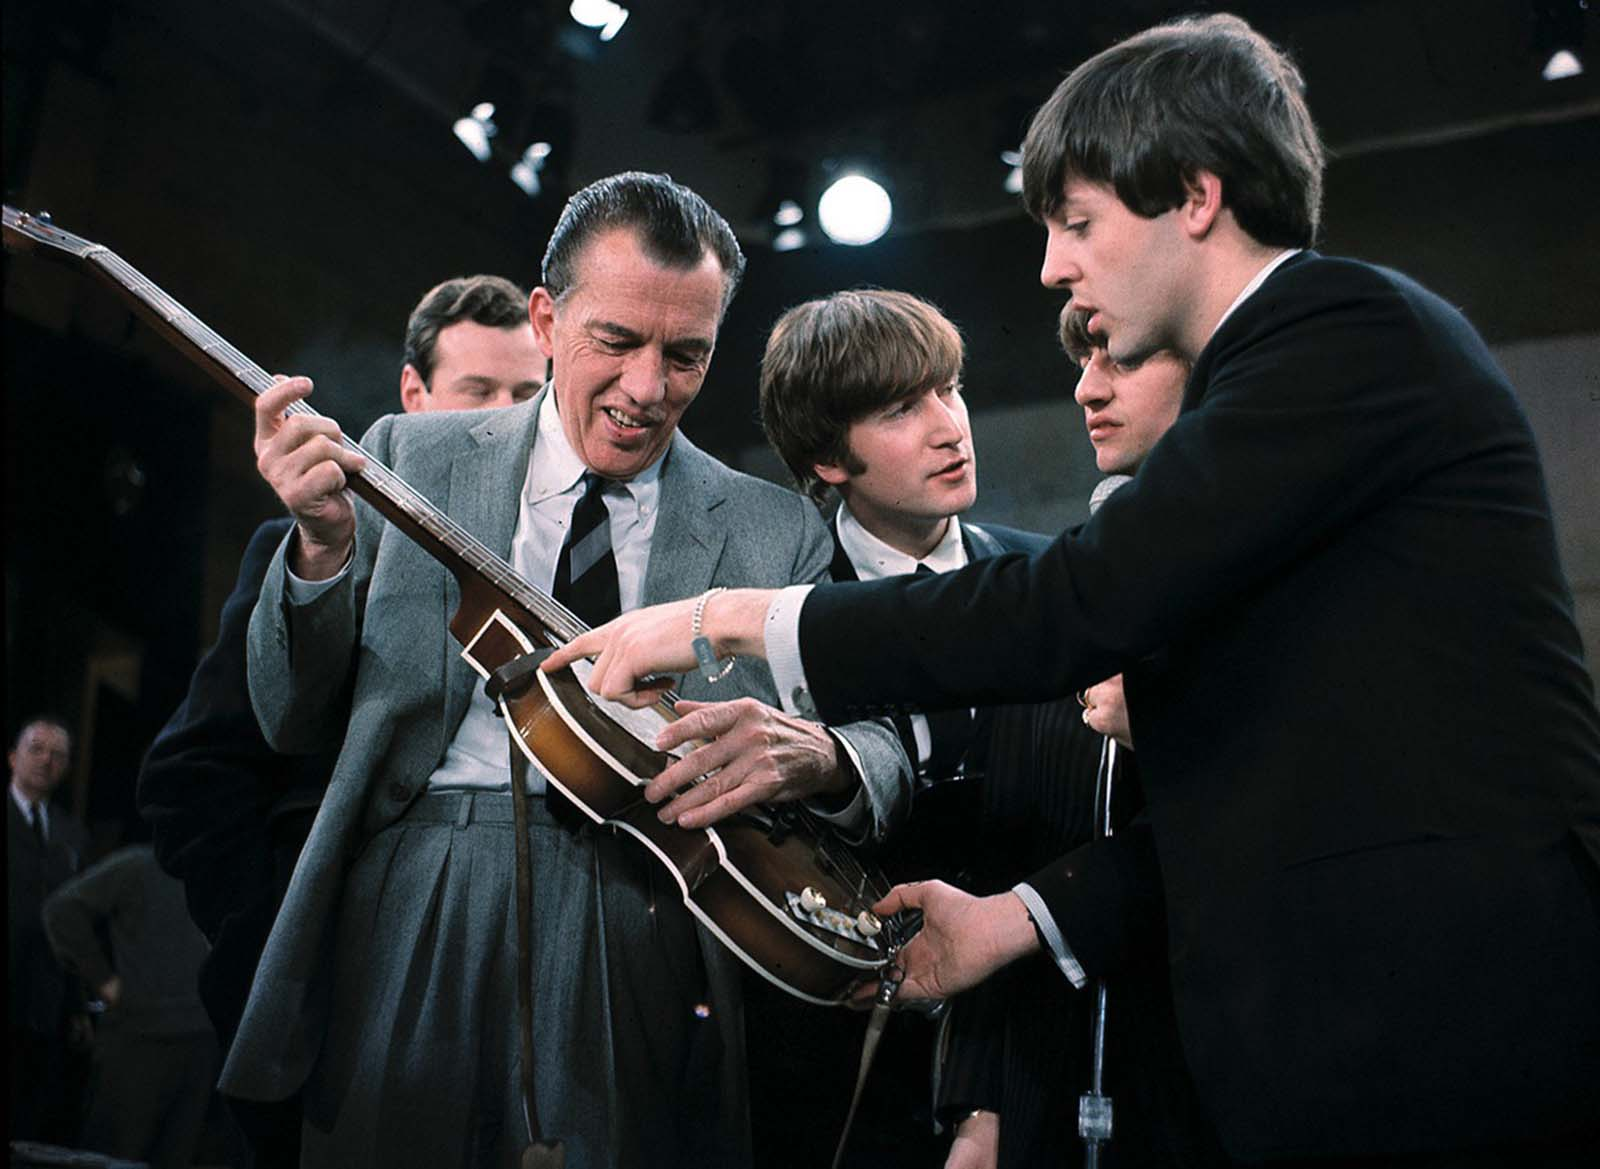 Paul McCartney, right, shows his guitar to Ed Sullivan before the Beatles' live television appearance in New York on February 9, 1964. Behind Sullivan, from left, Beatles manager Brian Epstein, John Lennon, and Ringo Starr.